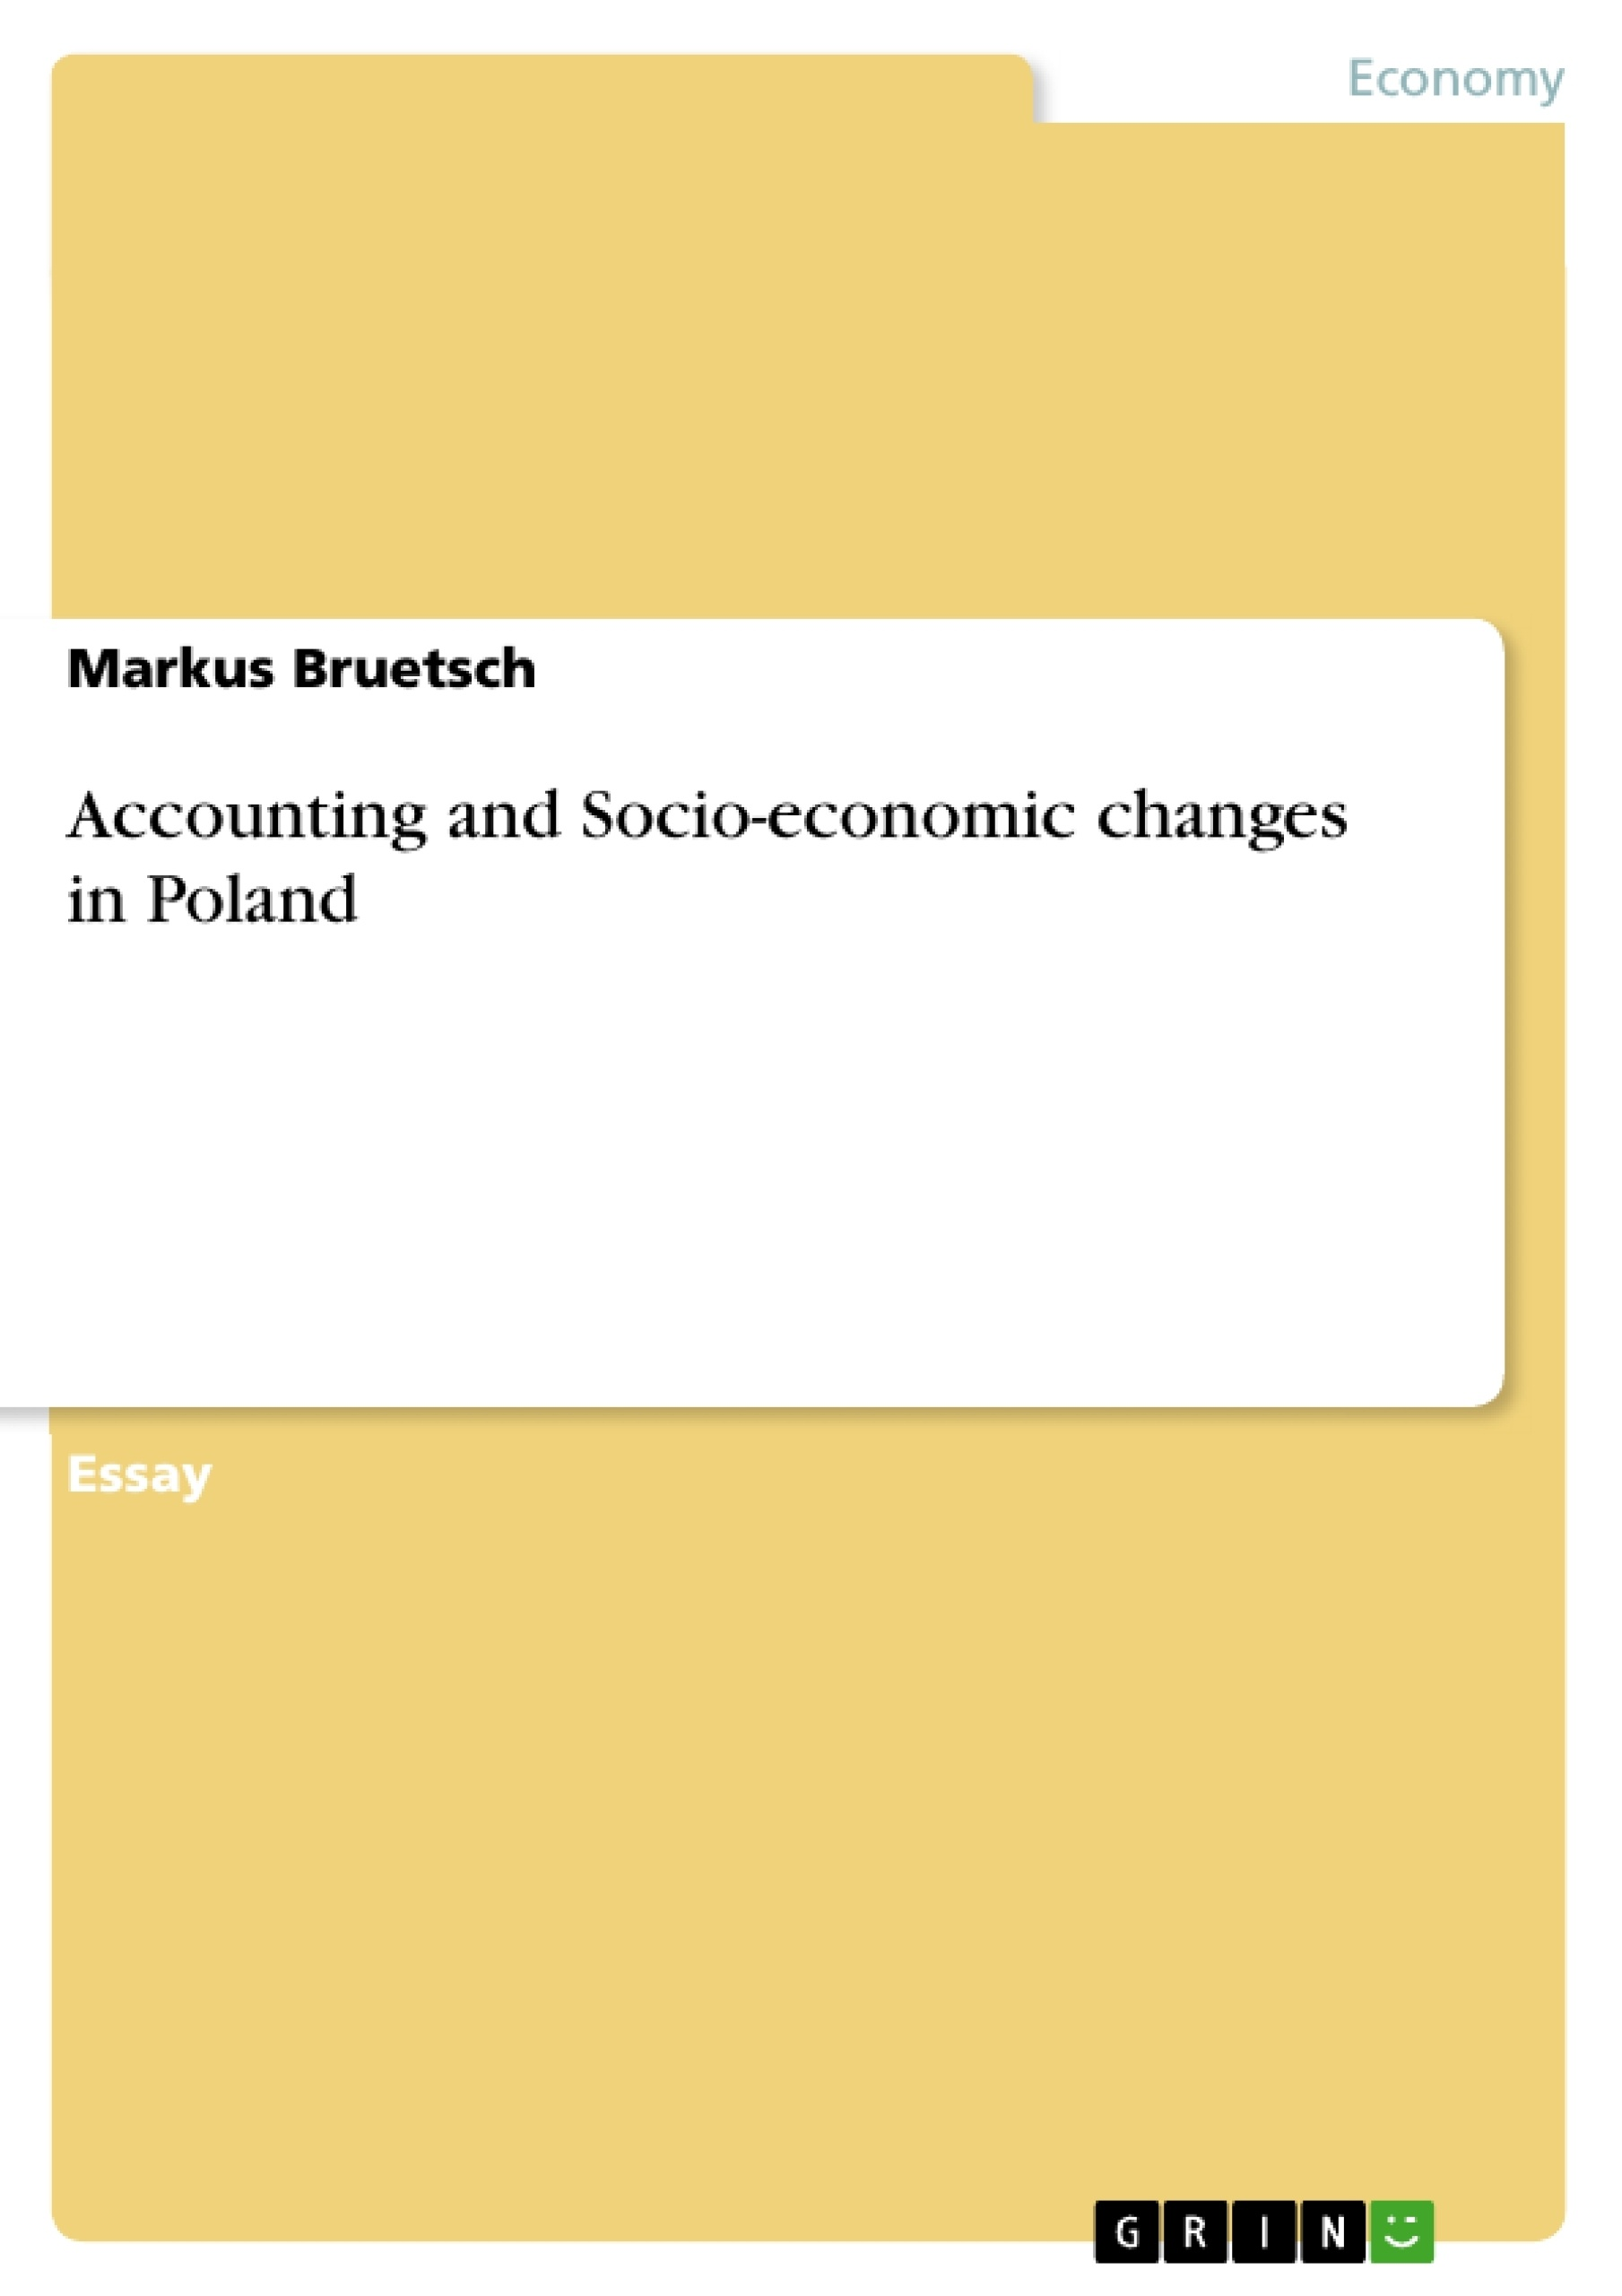 Title: Accounting and Socio-economic changes in Poland